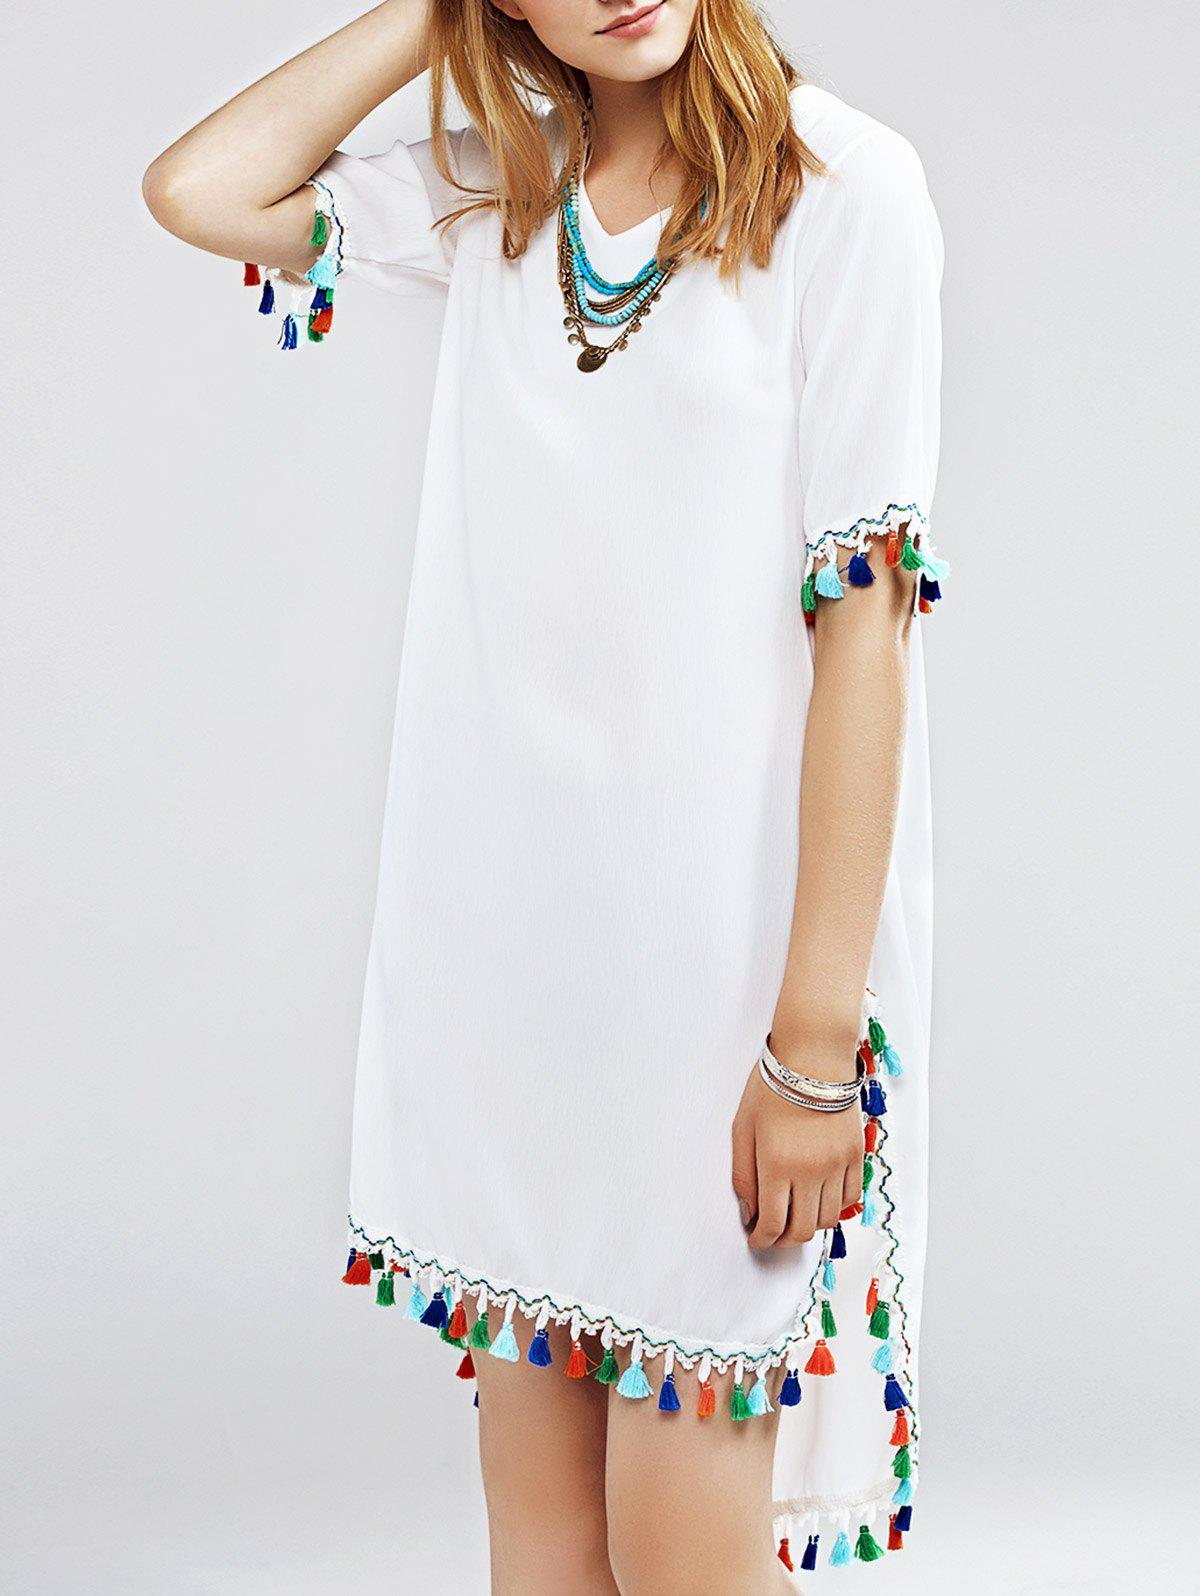 Refreshing Women's Multicolor Fringed Furcal Dress - WHITE ONE SIZE(FIT SIZE XS TO M)